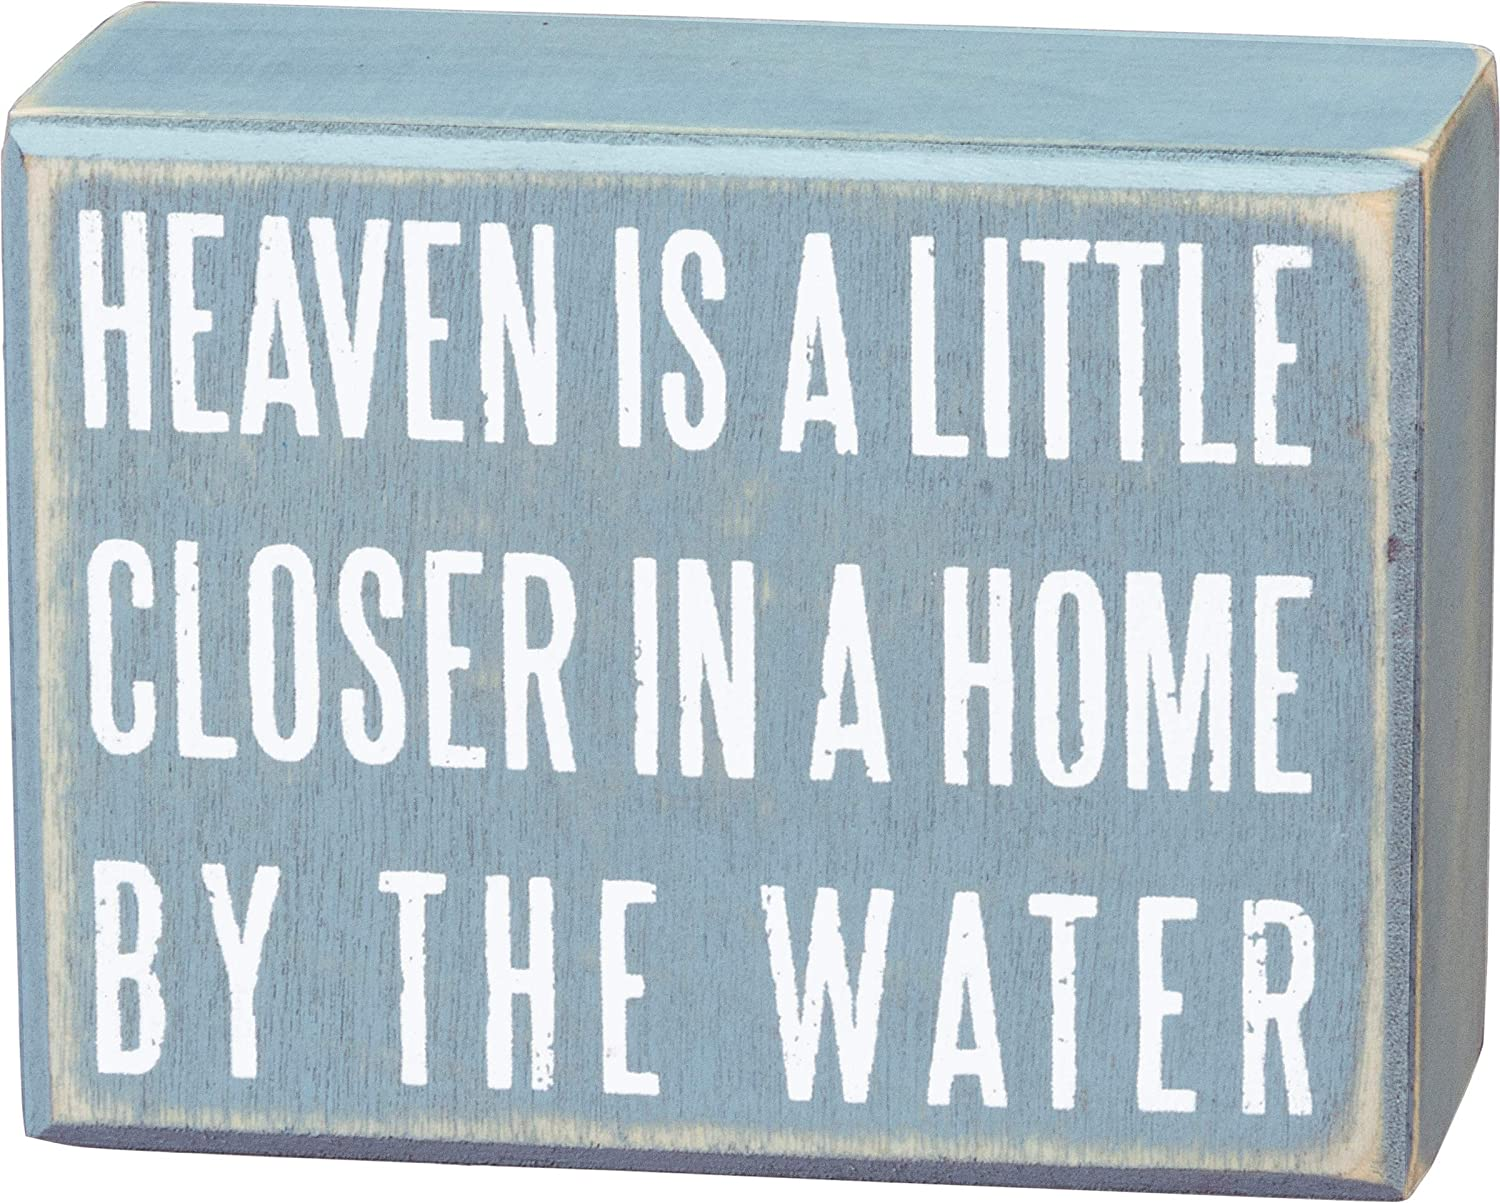 Primitives by Kathy 16354 Distressed Beach-Inspired Small Box Sign, 4 x 3-Inches, Home by The Water